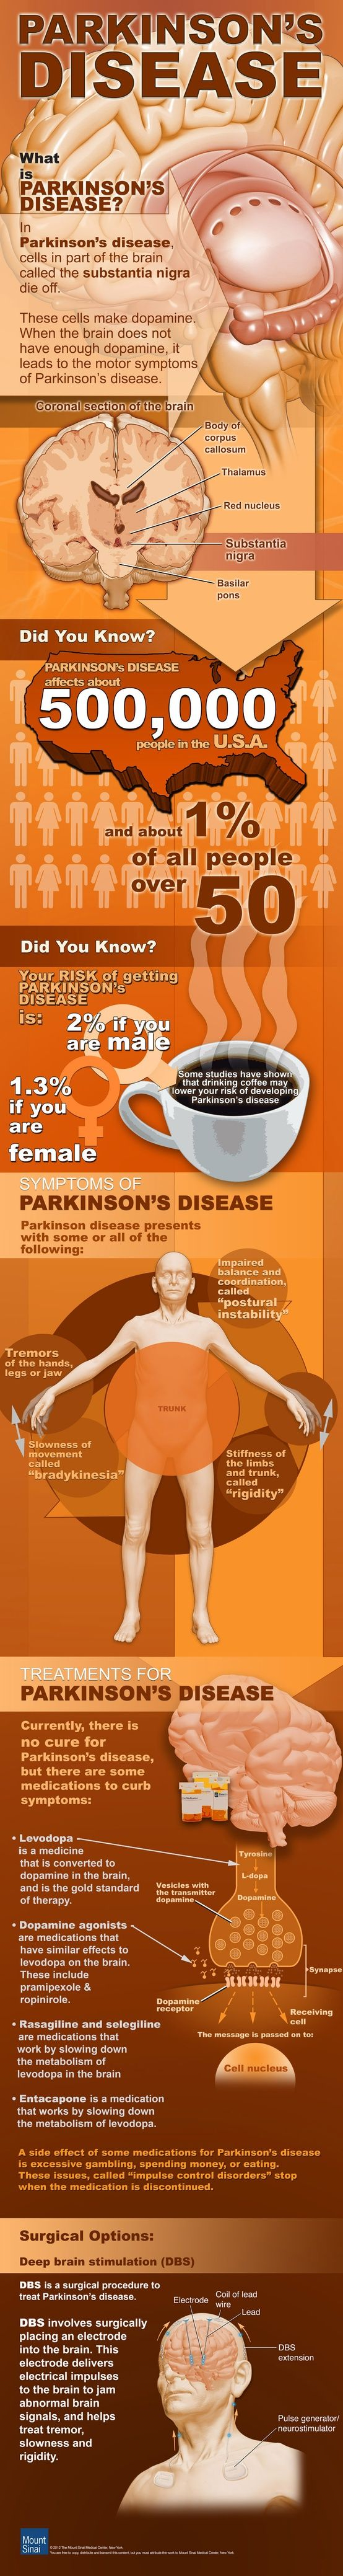 Parkinson's Disease -PositiveMed | Positive Vibrations in Health